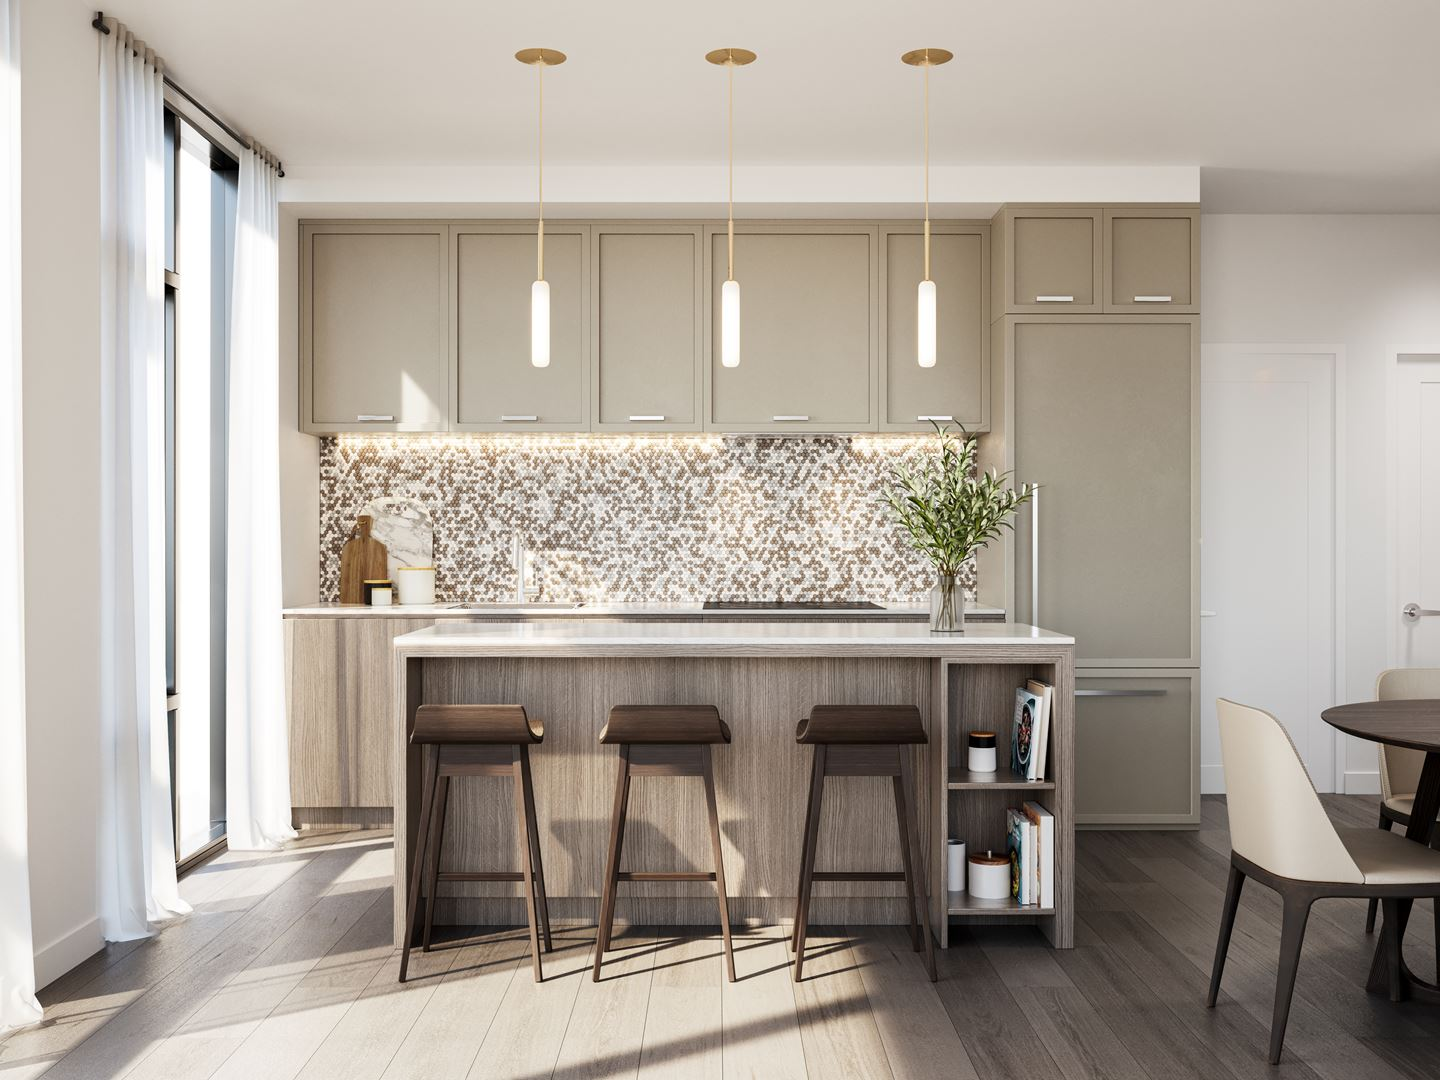 Rendering of 8188 Yonge Condos suite interior kitchen.